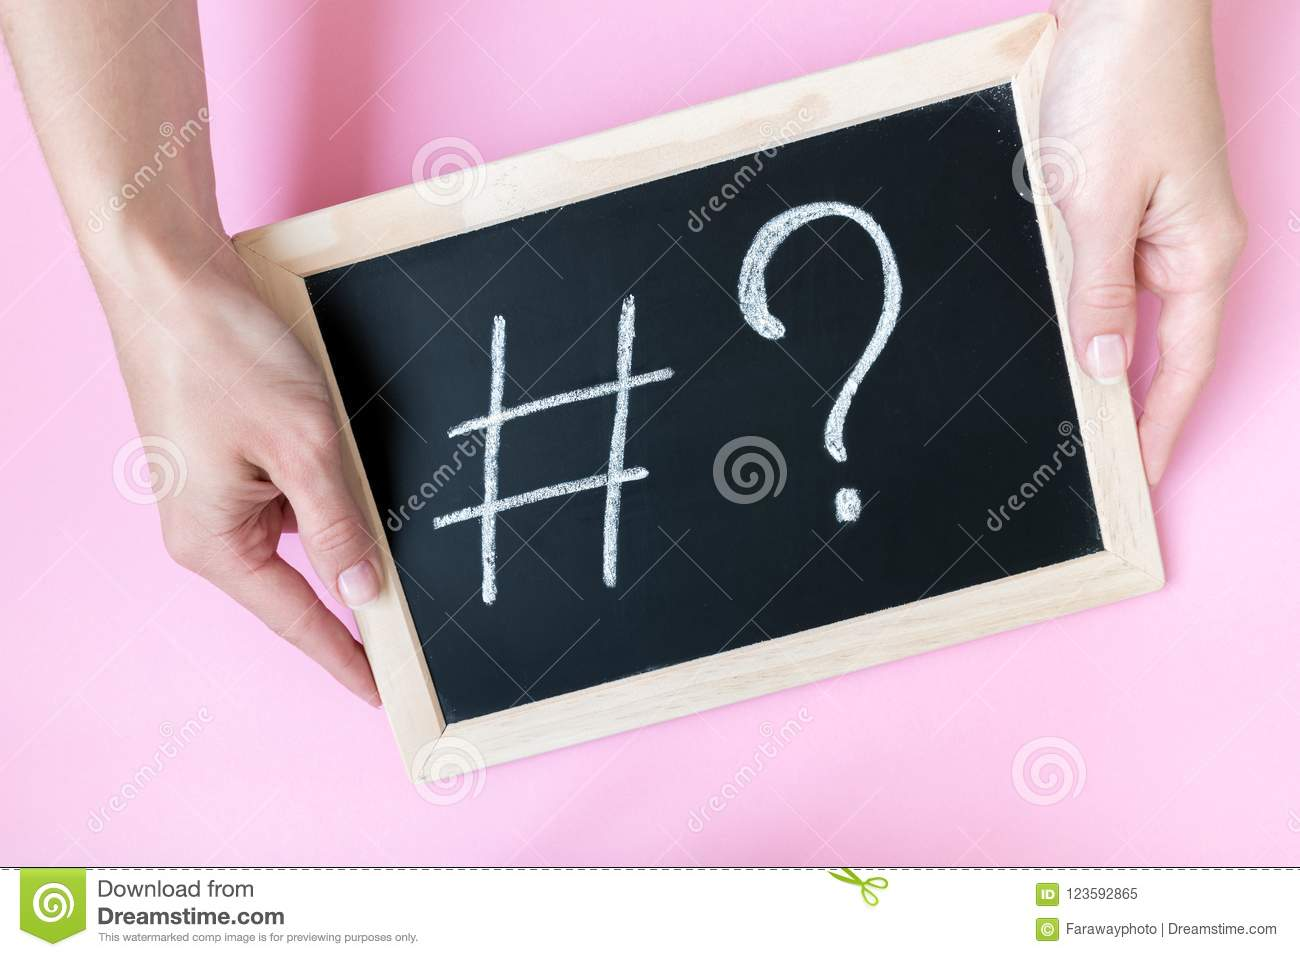 Hands holding chalkboard with hashtag sign